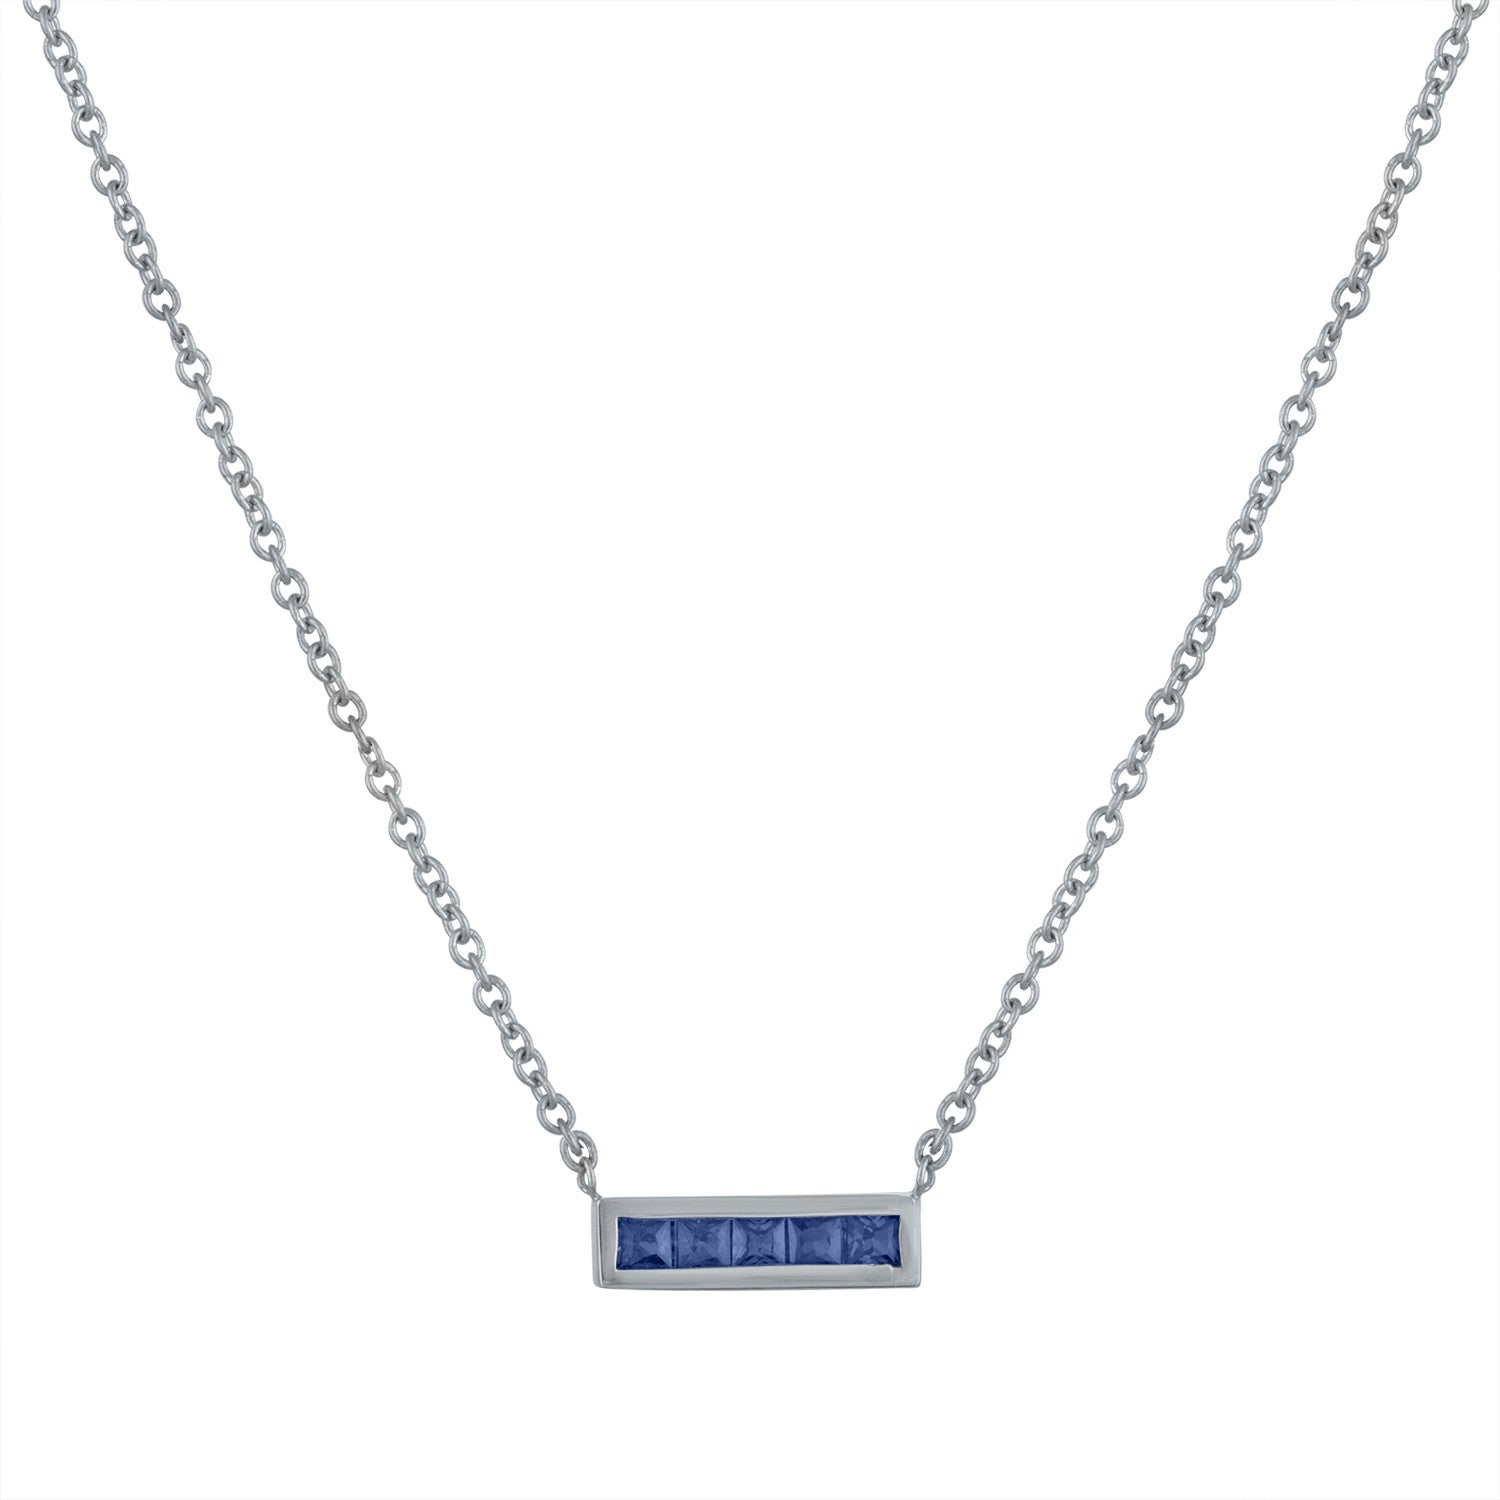 Small bar pendant with 5 square sapphires